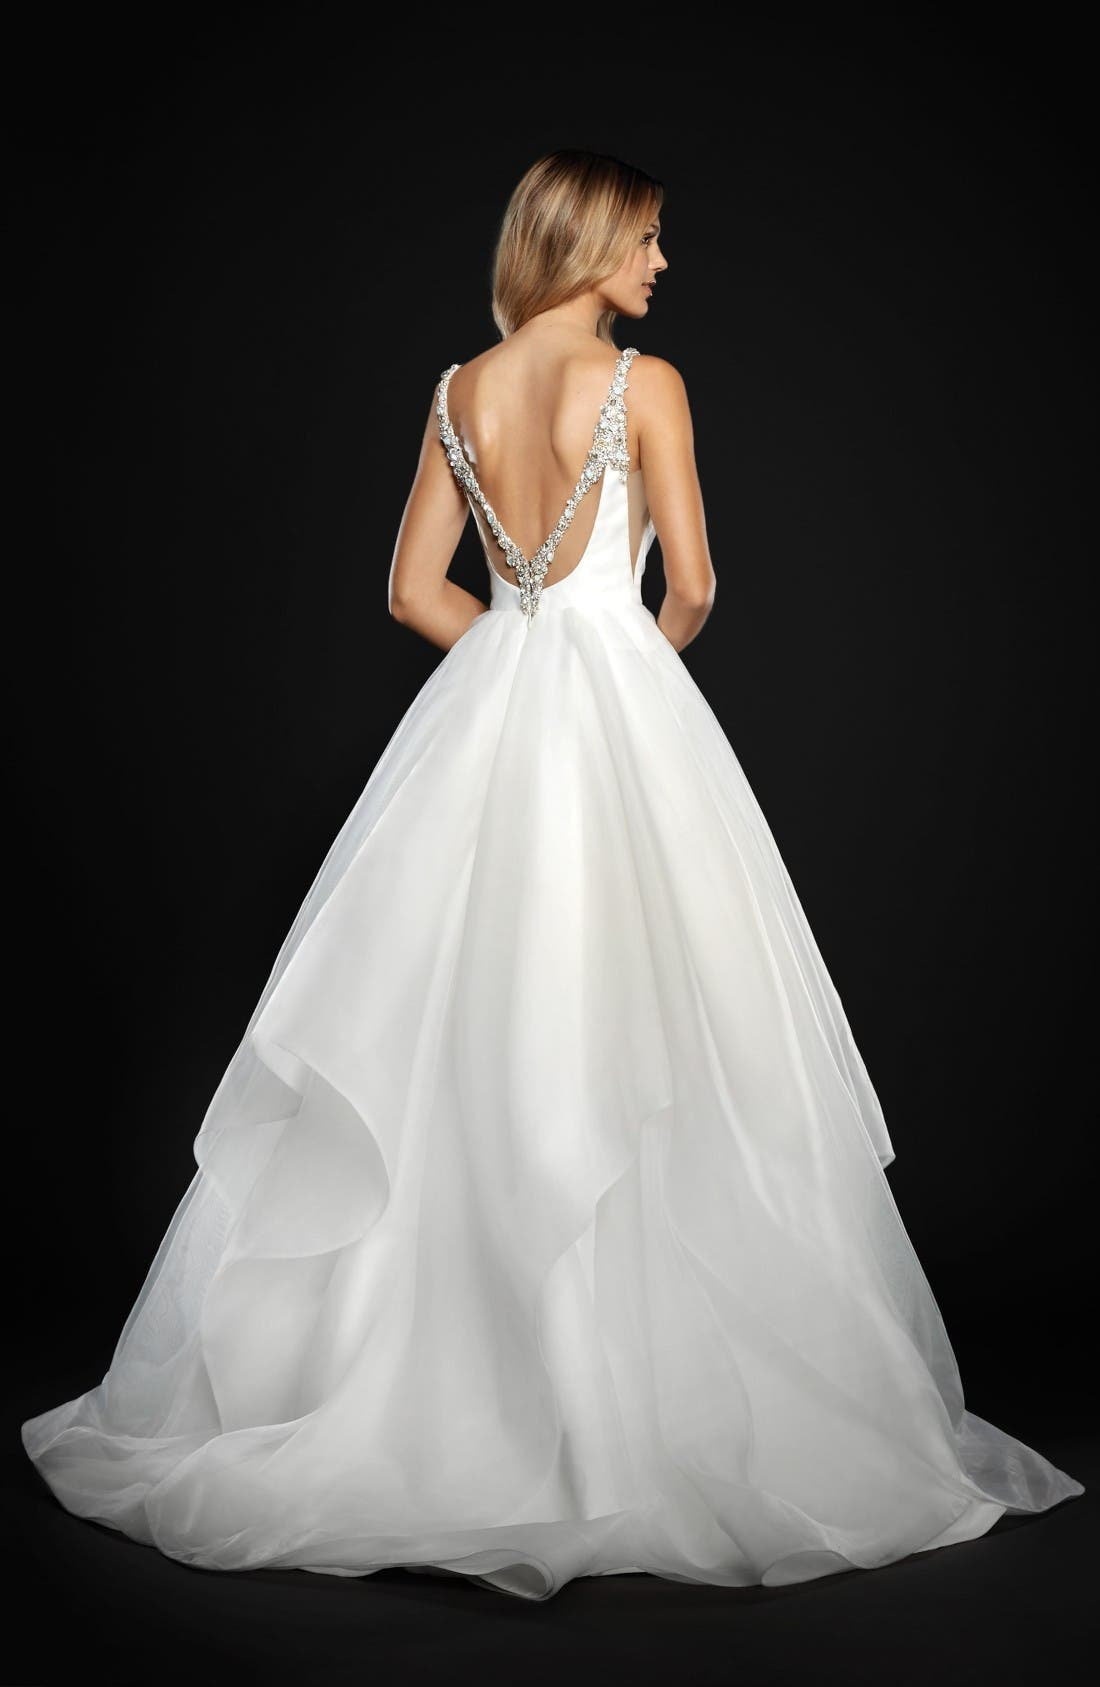 Dare Embellished Draped Organza Ballgown,                             Alternate thumbnail 2, color,                             Ivory